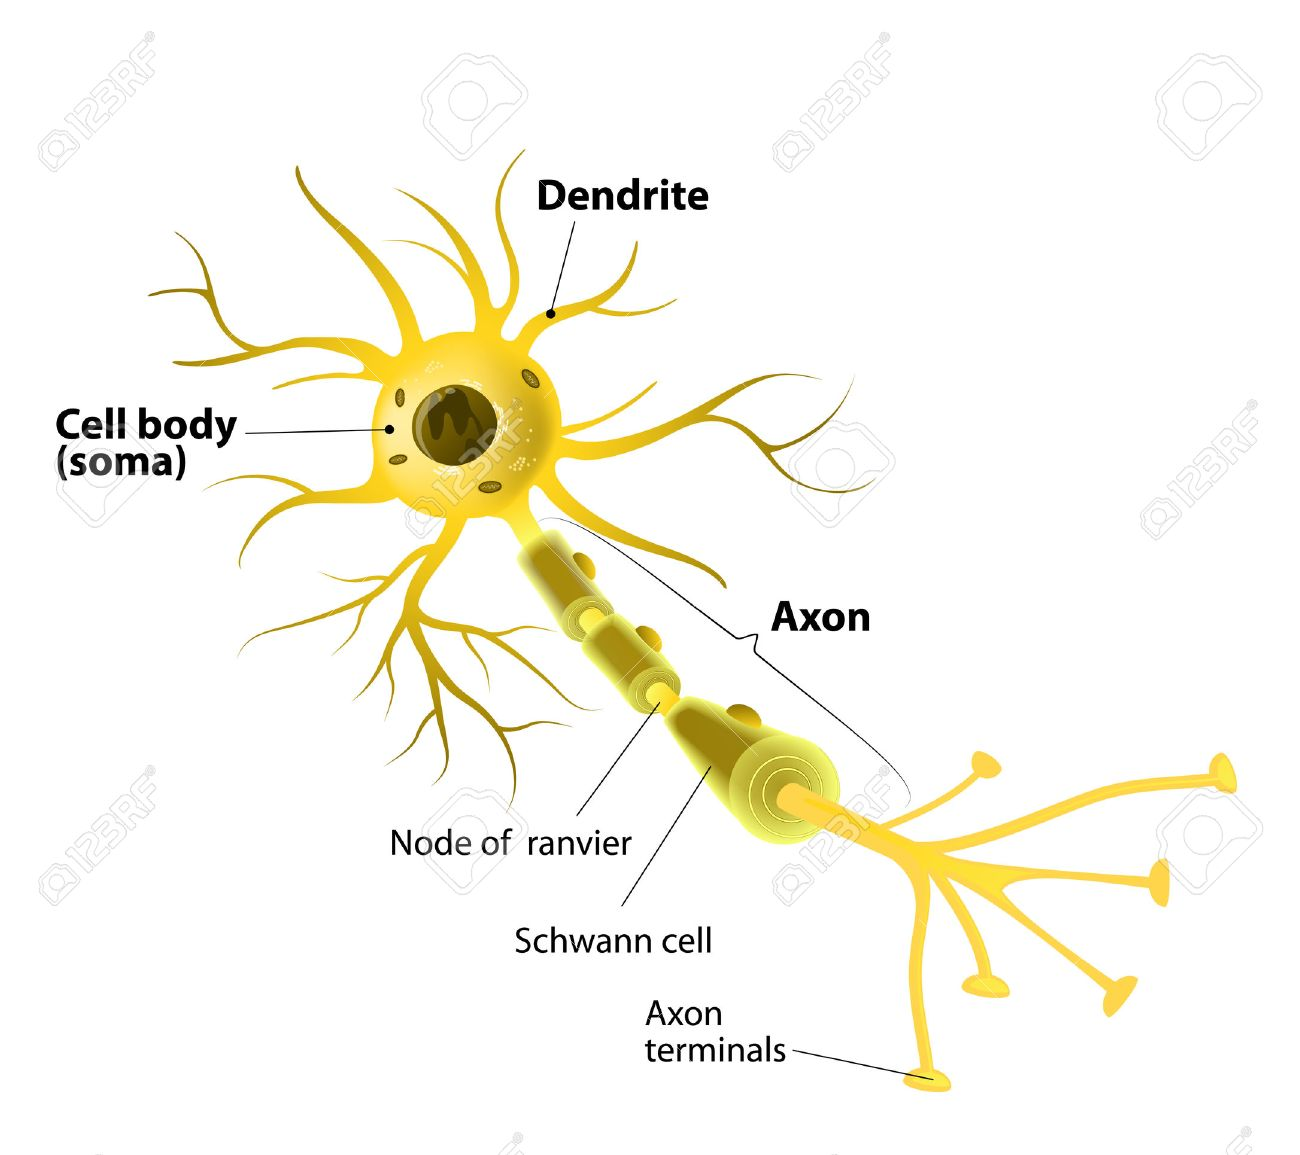 synapse diagram label 4l80e transmission parts neuron and labeled royalty free cliparts vectors stock vector 37371607